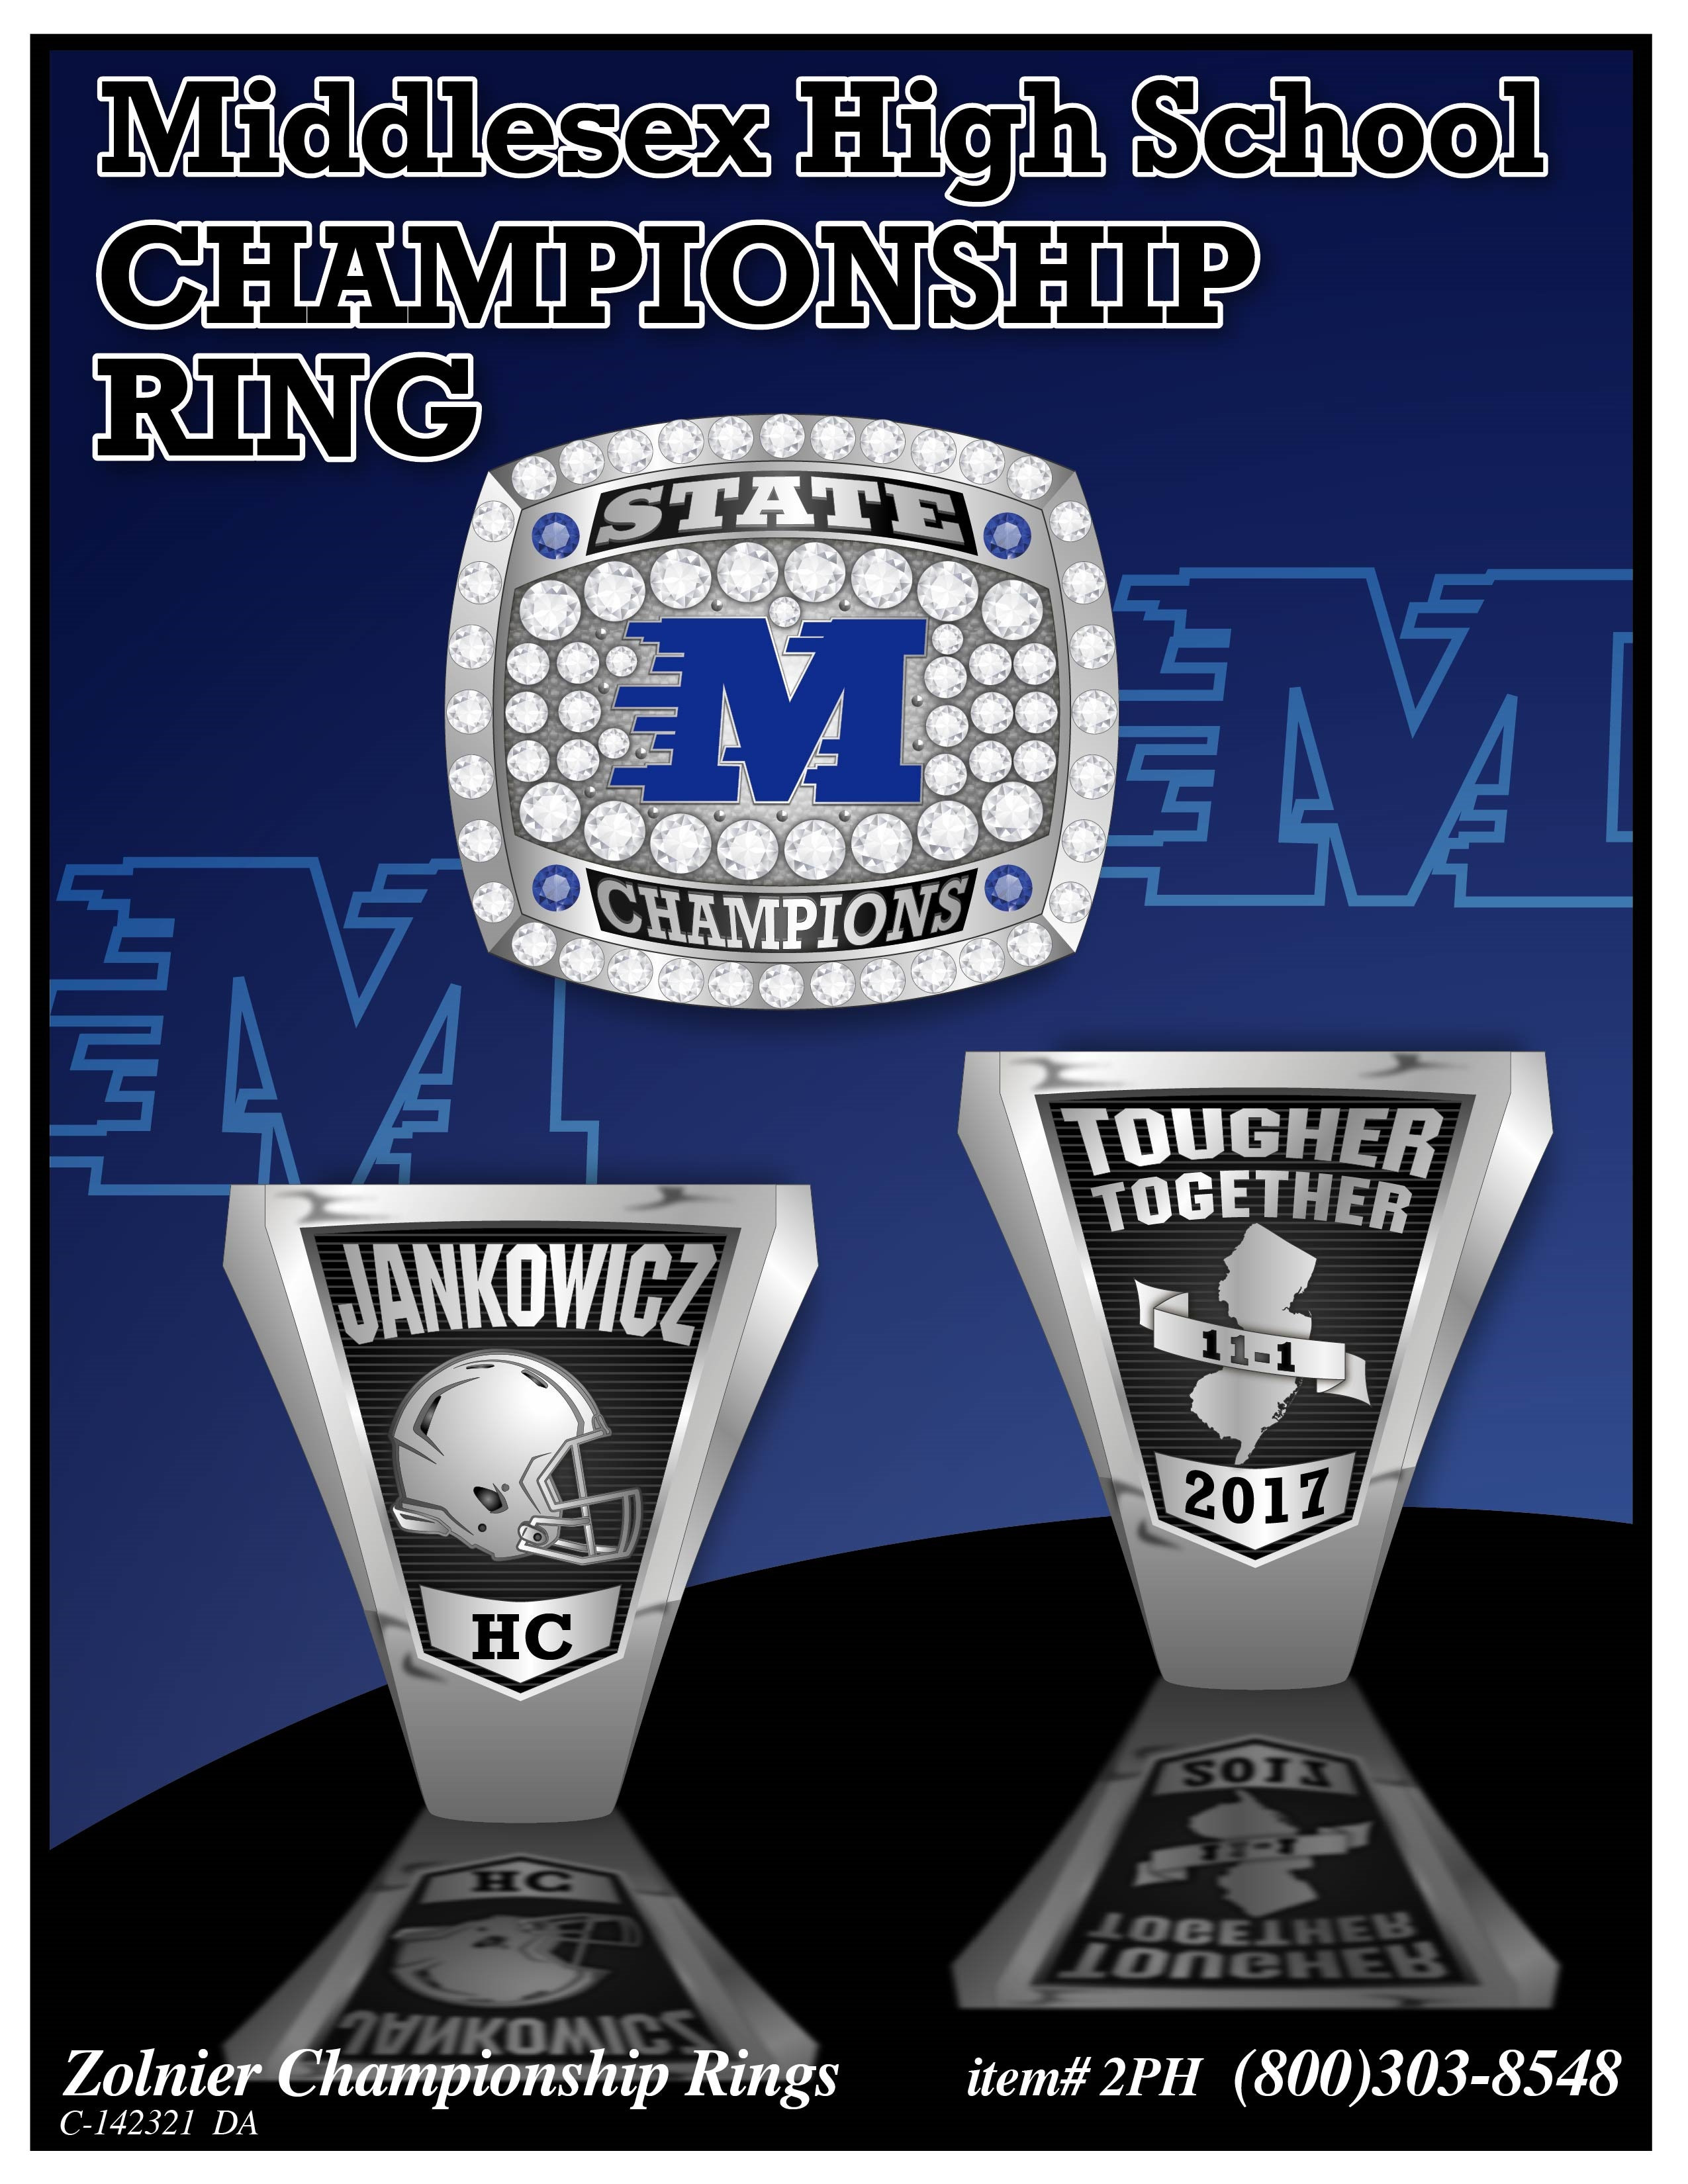 C-142321 Middlesex HS Champ Ring